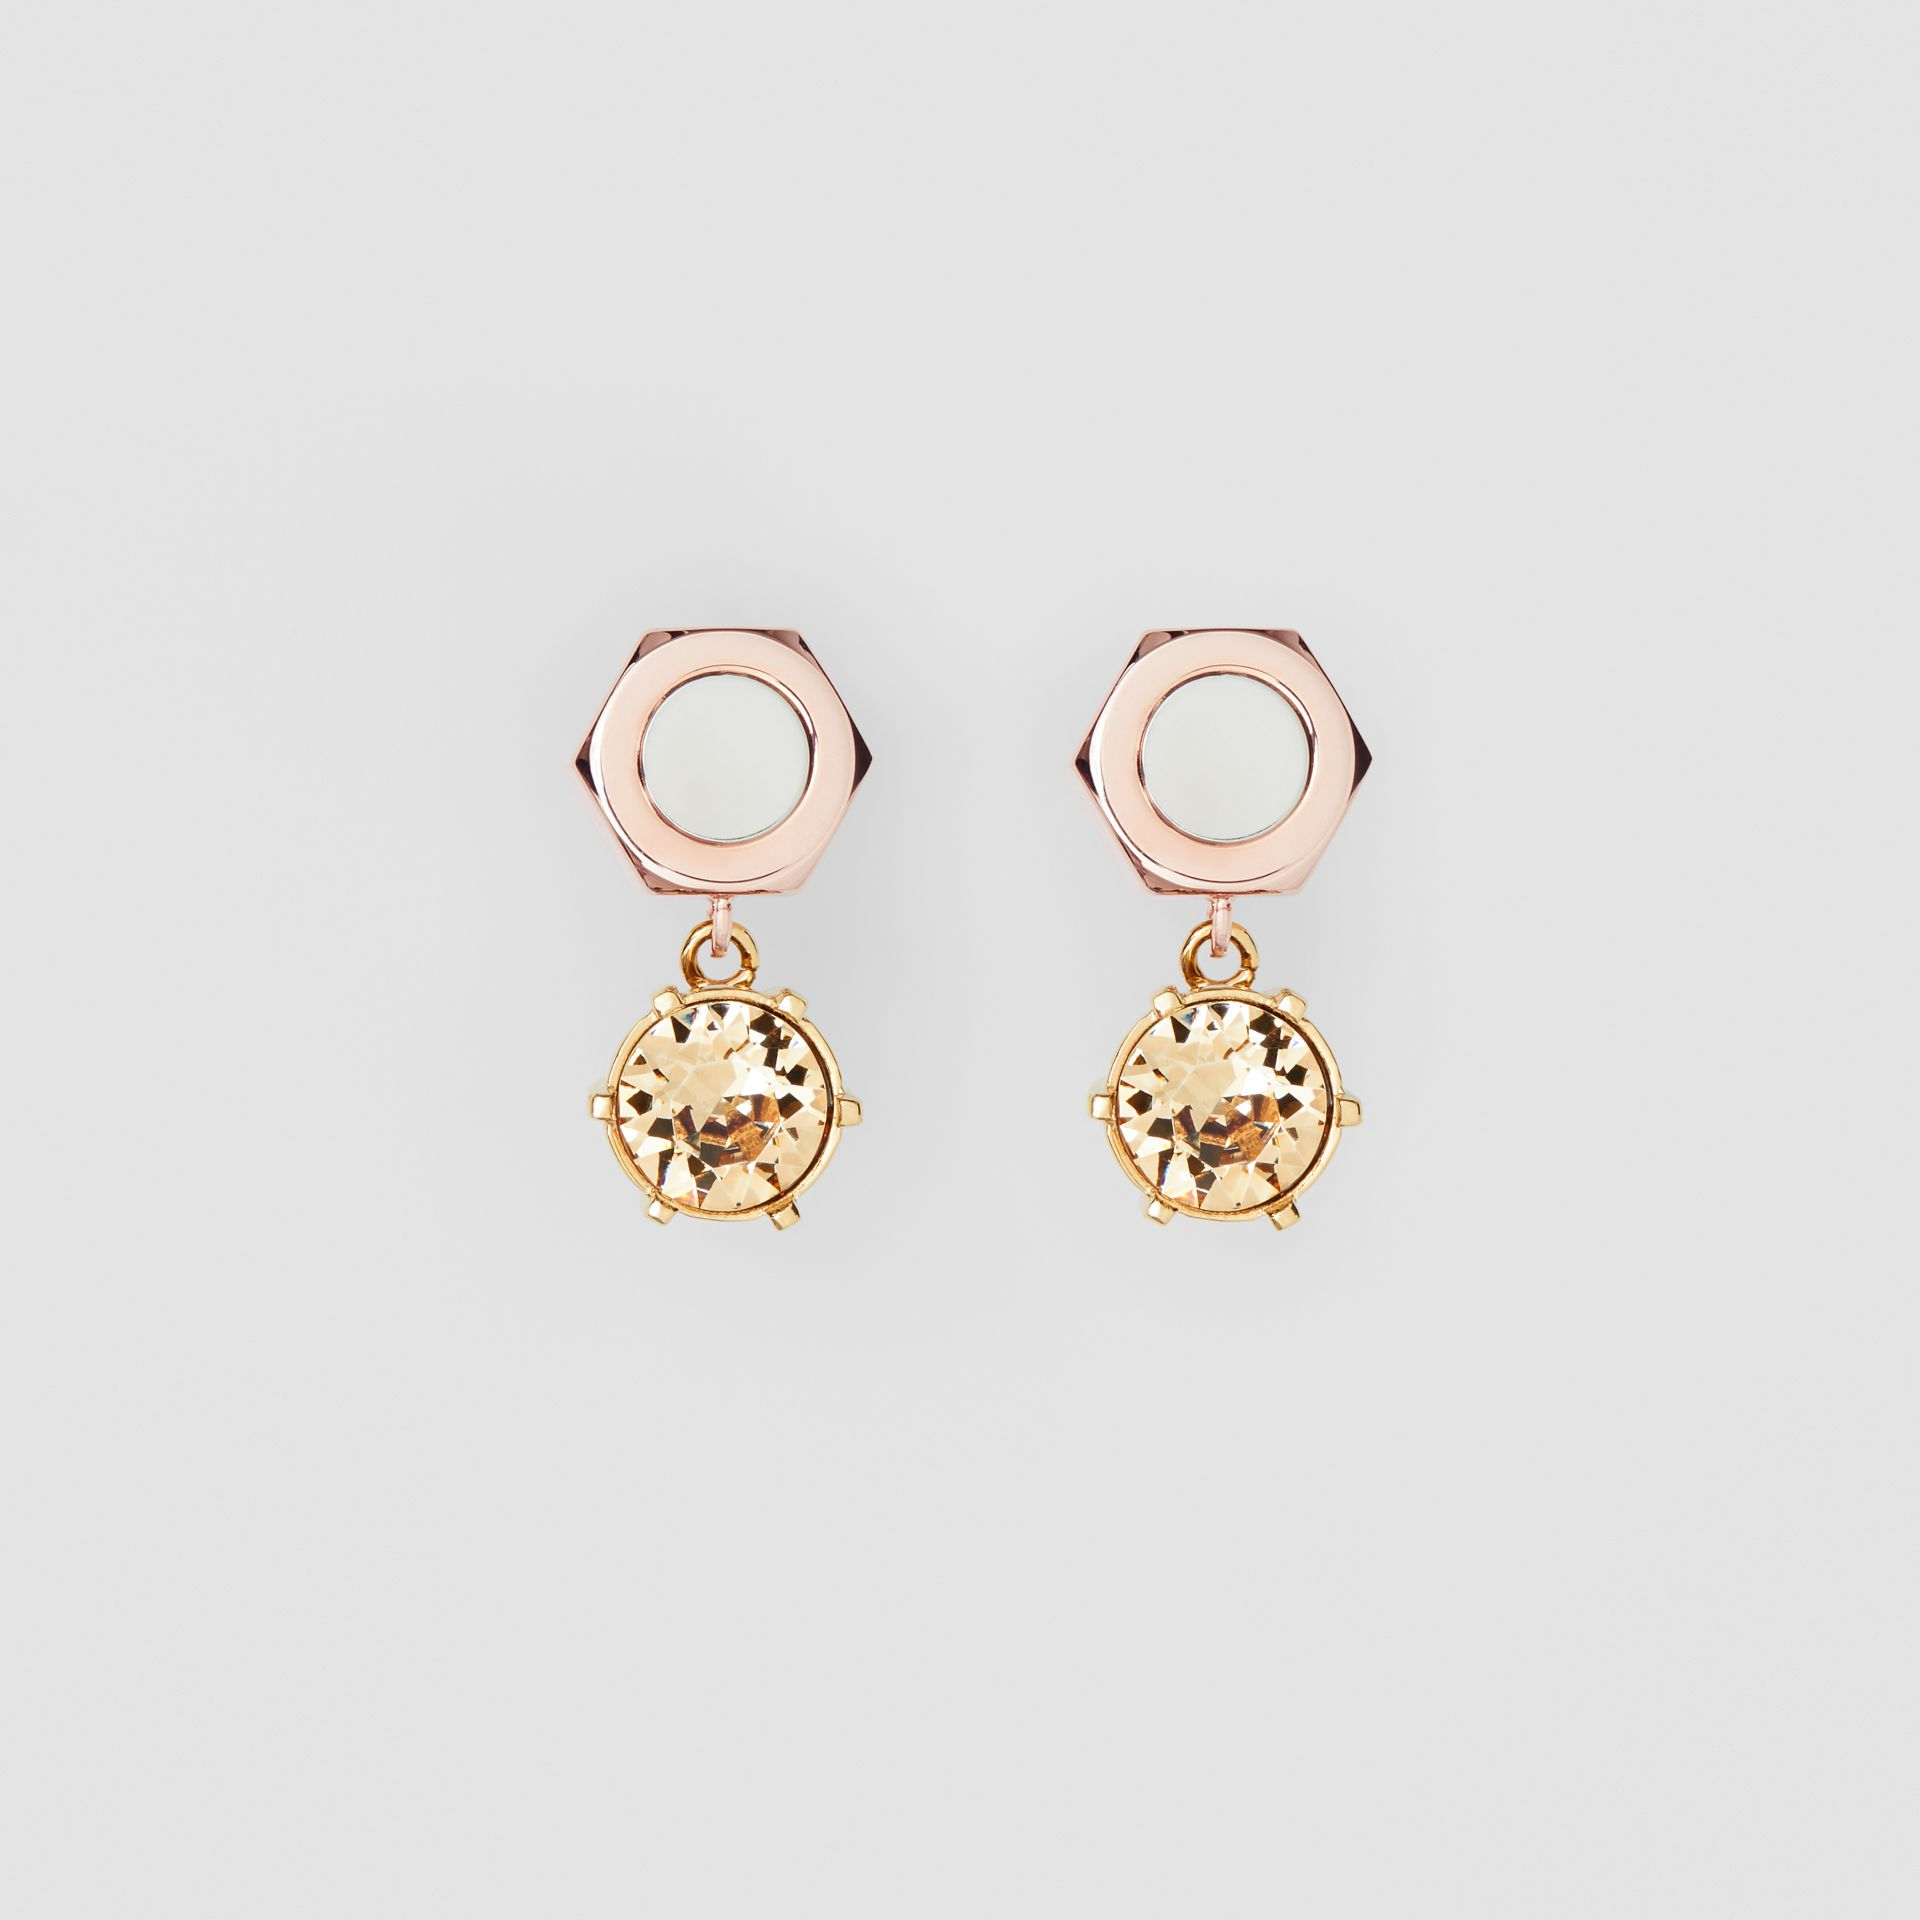 Crystal Charm Rose Gold-plated Nut and Bolt Earrings in Gold/palladium - Women | Burberry United Kingdom - gallery image 0